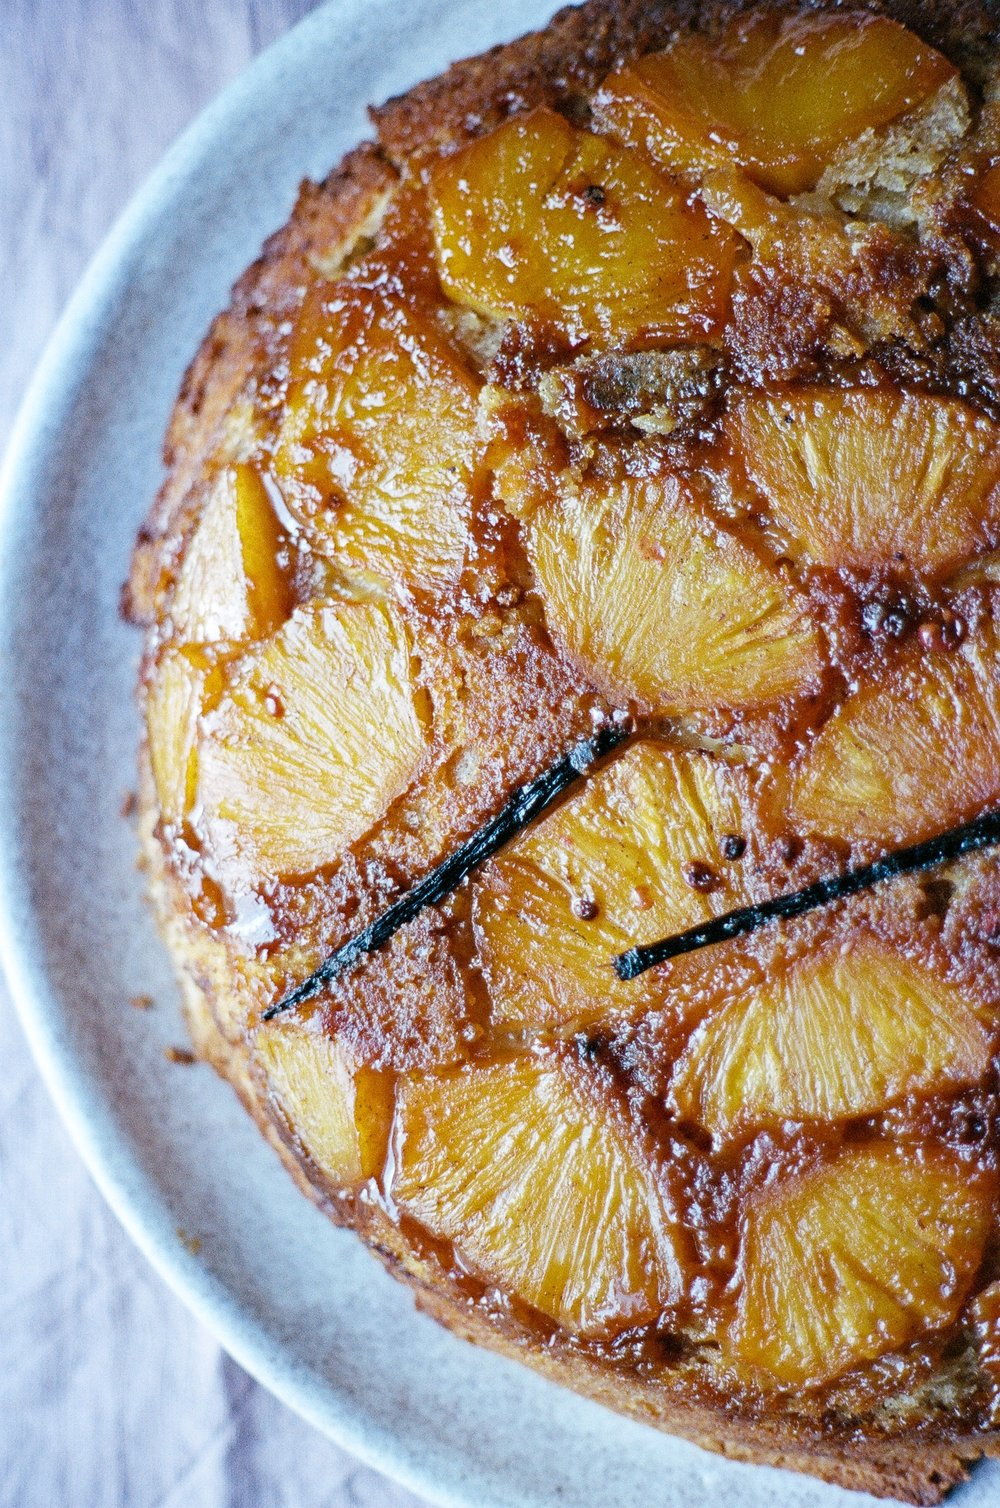 pineapple upside down cake-01910033.jpg